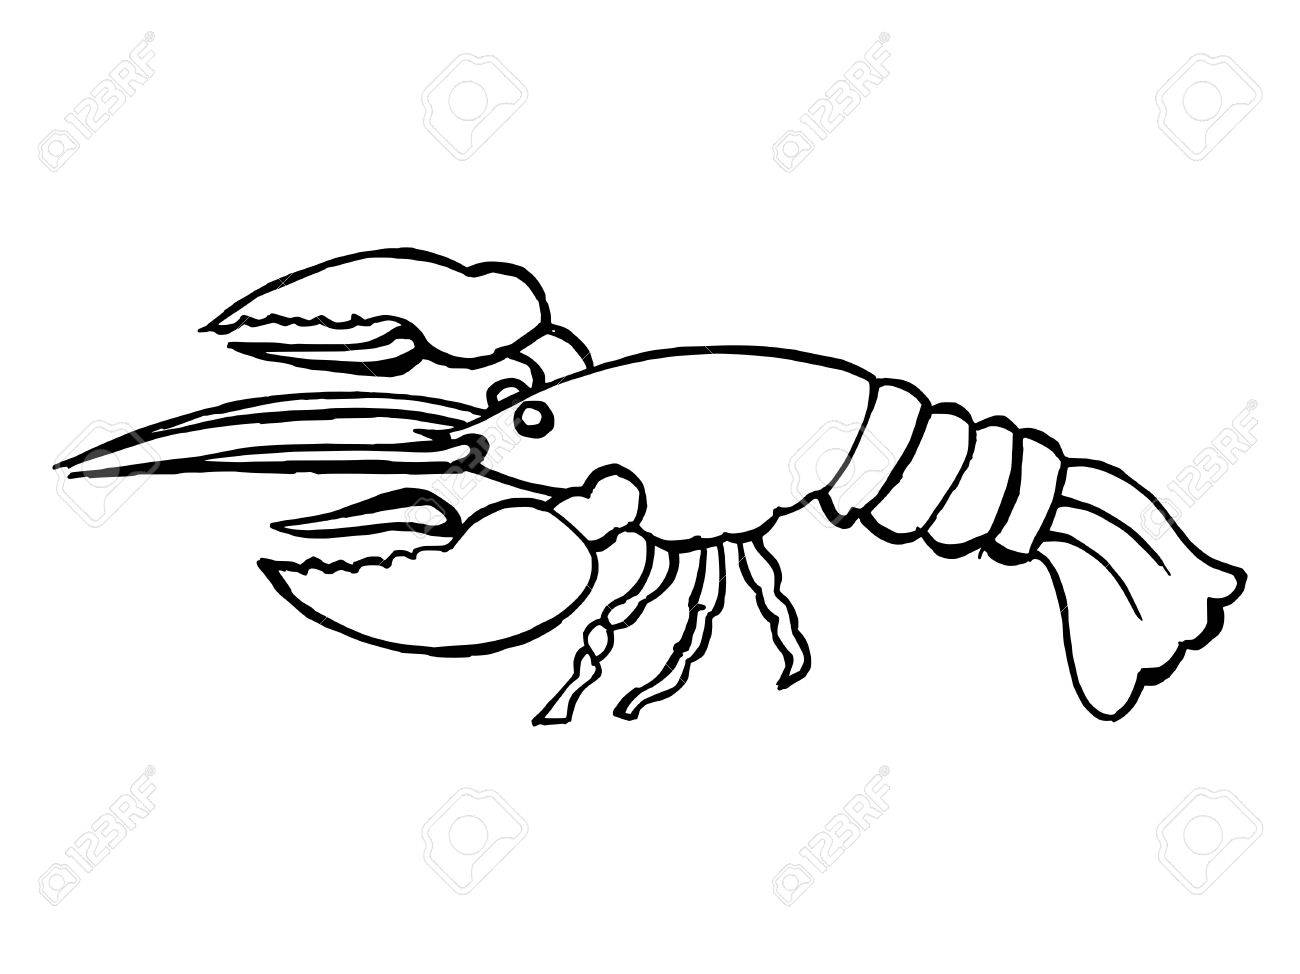 1300x974 Hand Drawn, Vector Illustration Of A Lobster Royalty Free Cliparts